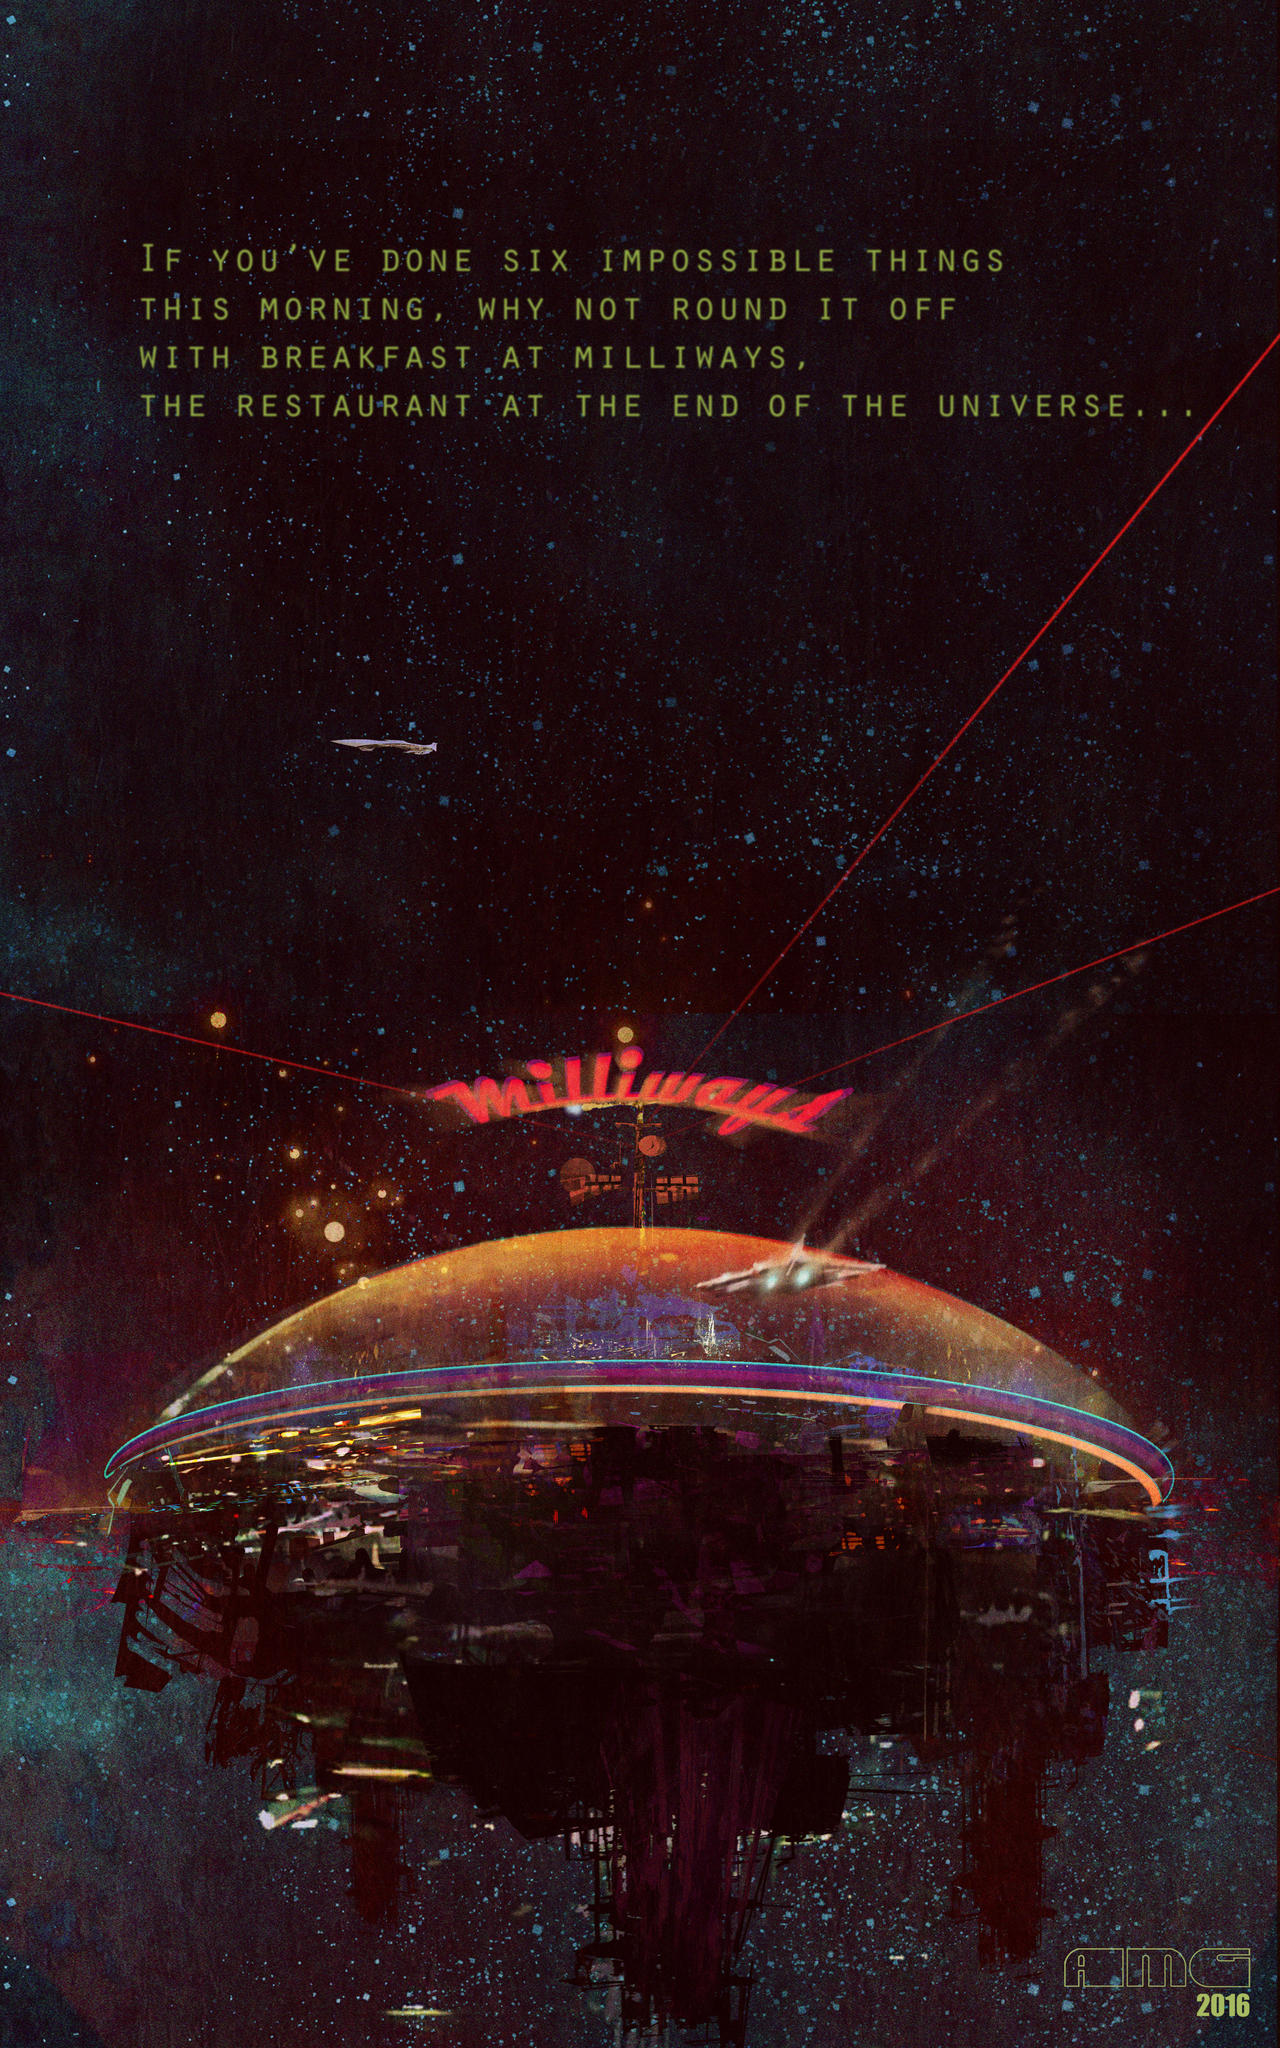 The Restaurant at the End of the Universe by TK769